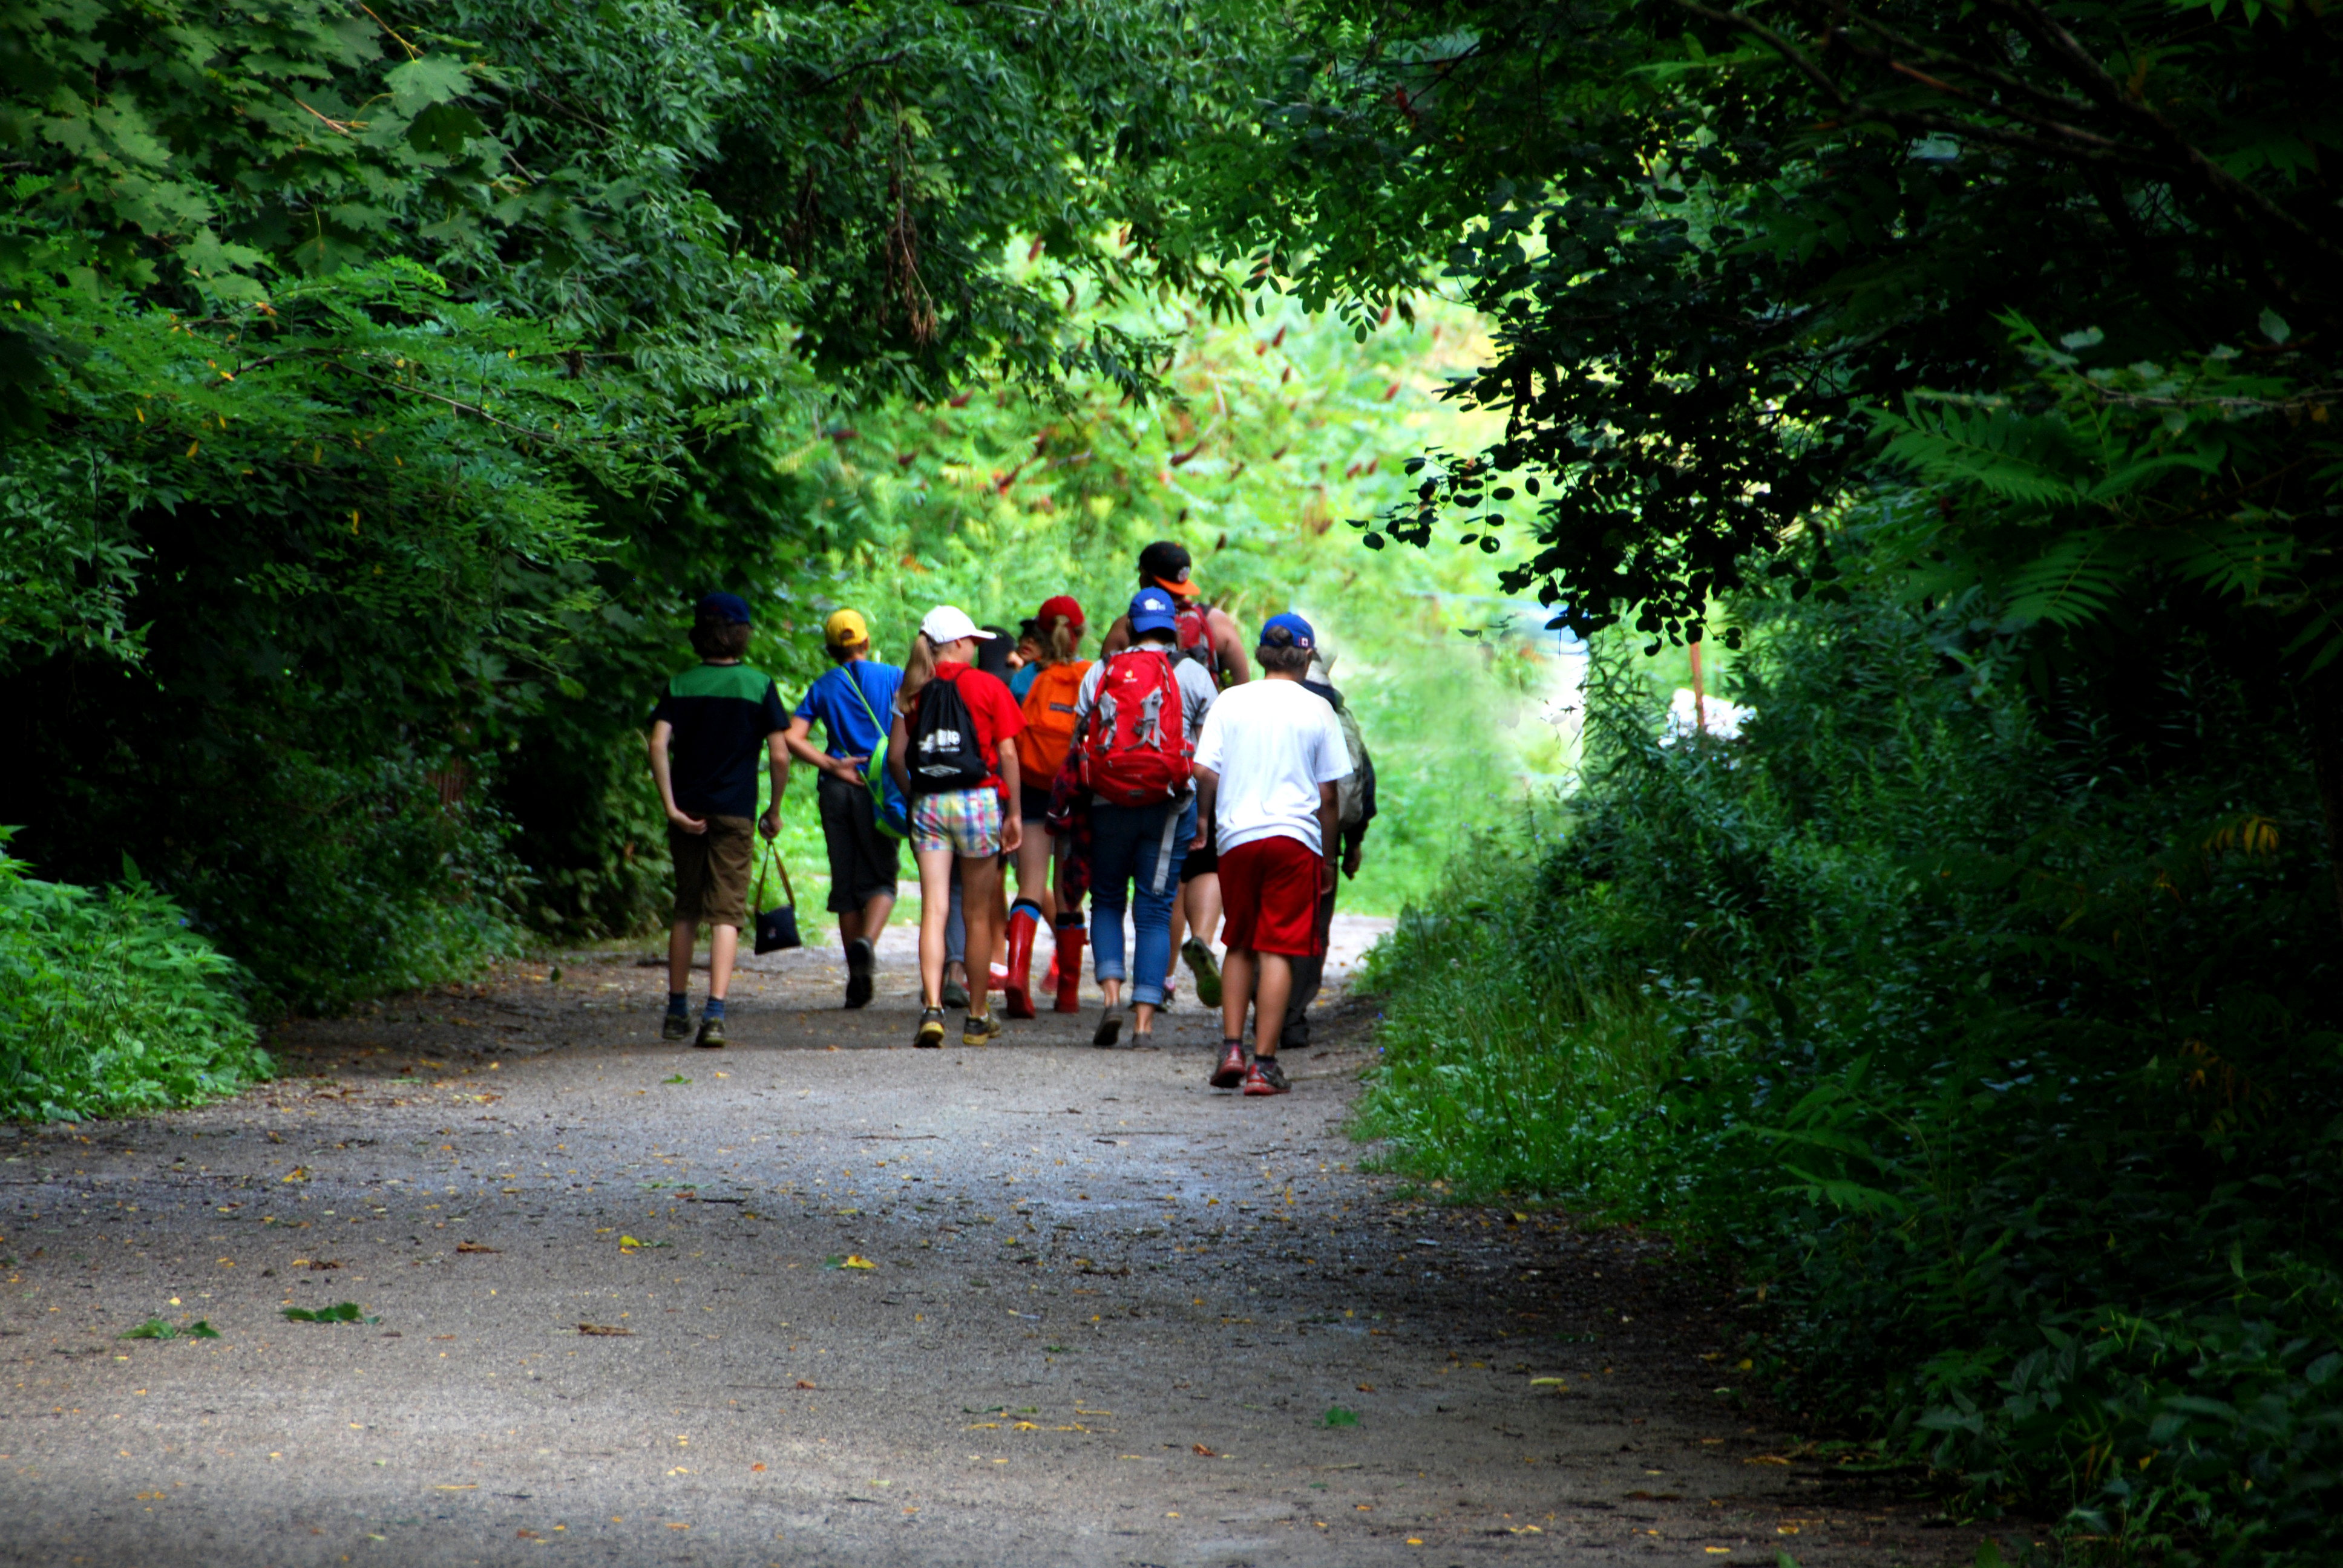 Children walking along a forested path.